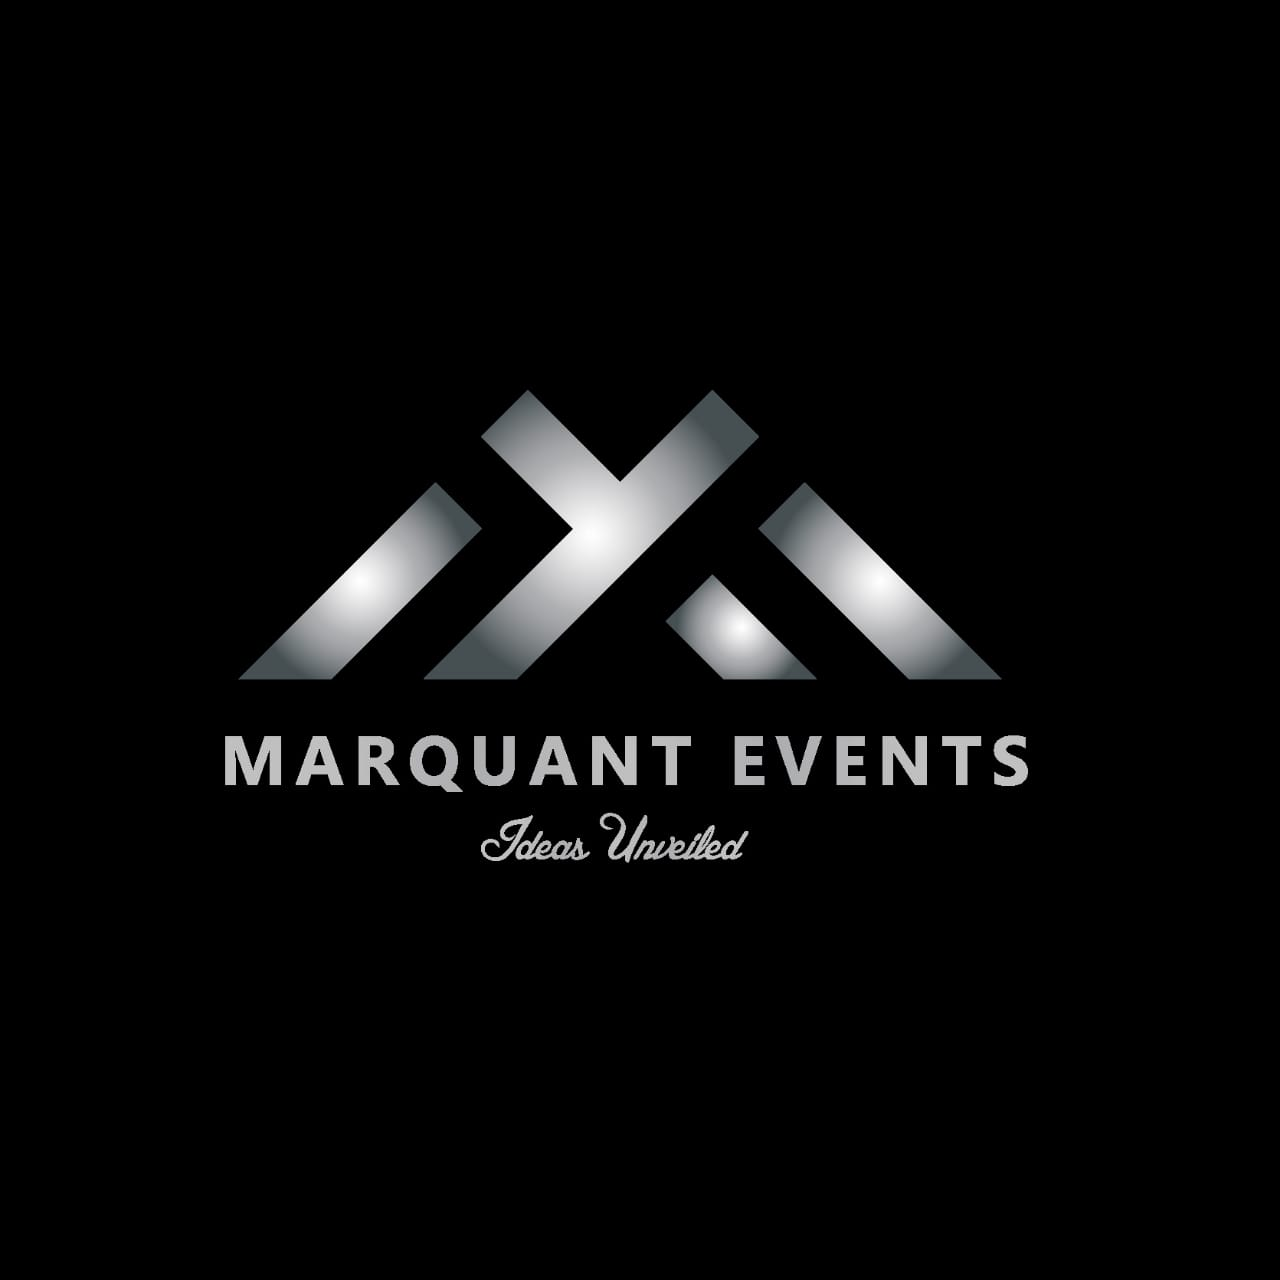 Marquant_Events Logo